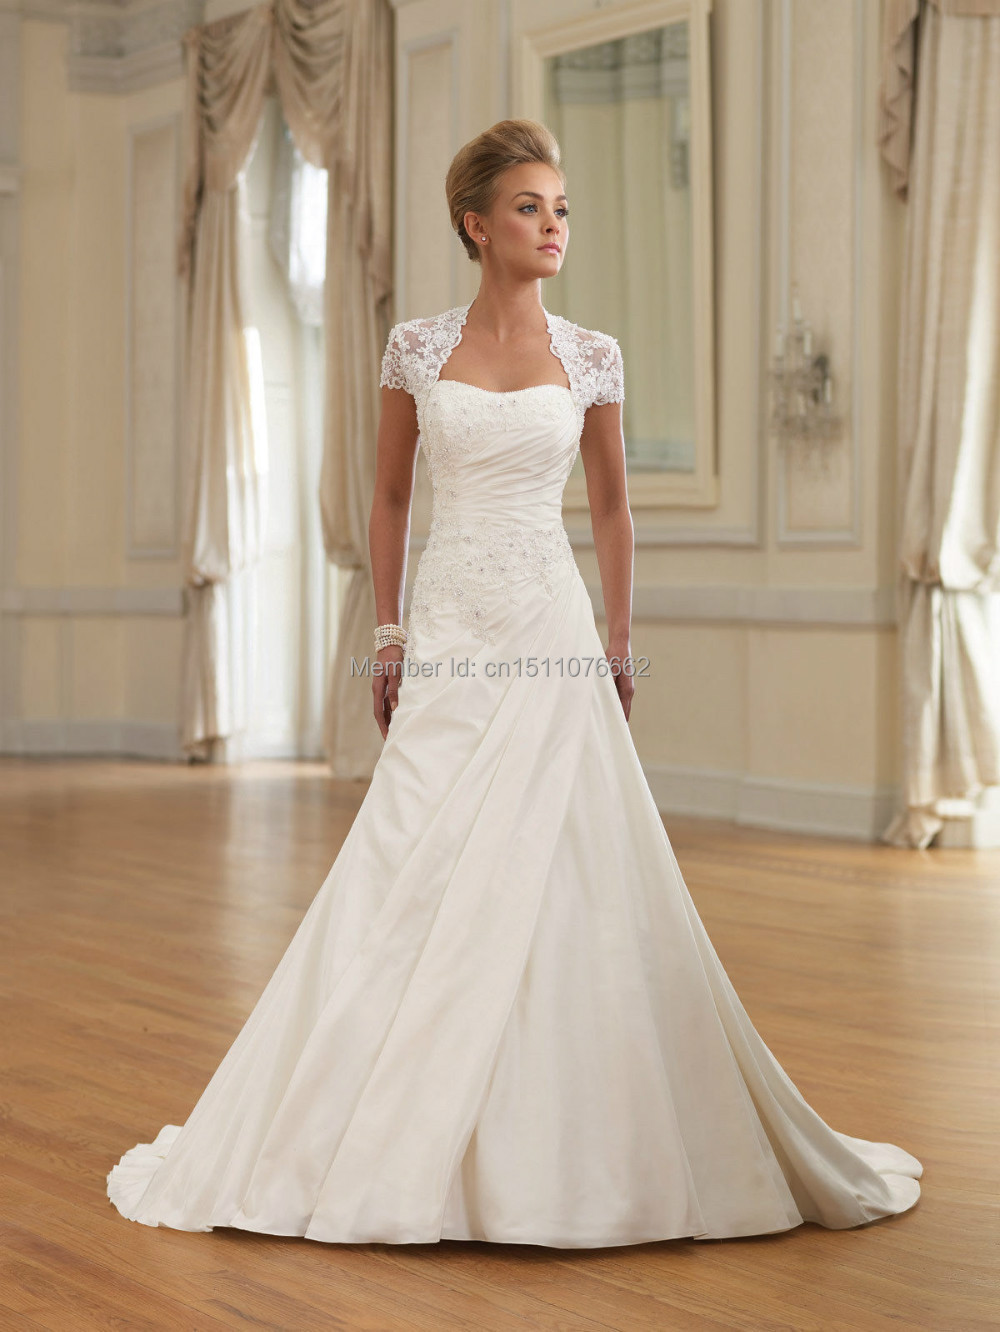 Jackets bridesmaid dresses picture more detailed picture about white ivory bridal satin formal mermaid fishtail long train wedding dress custom made size 8 10 ombrellifo Choice Image